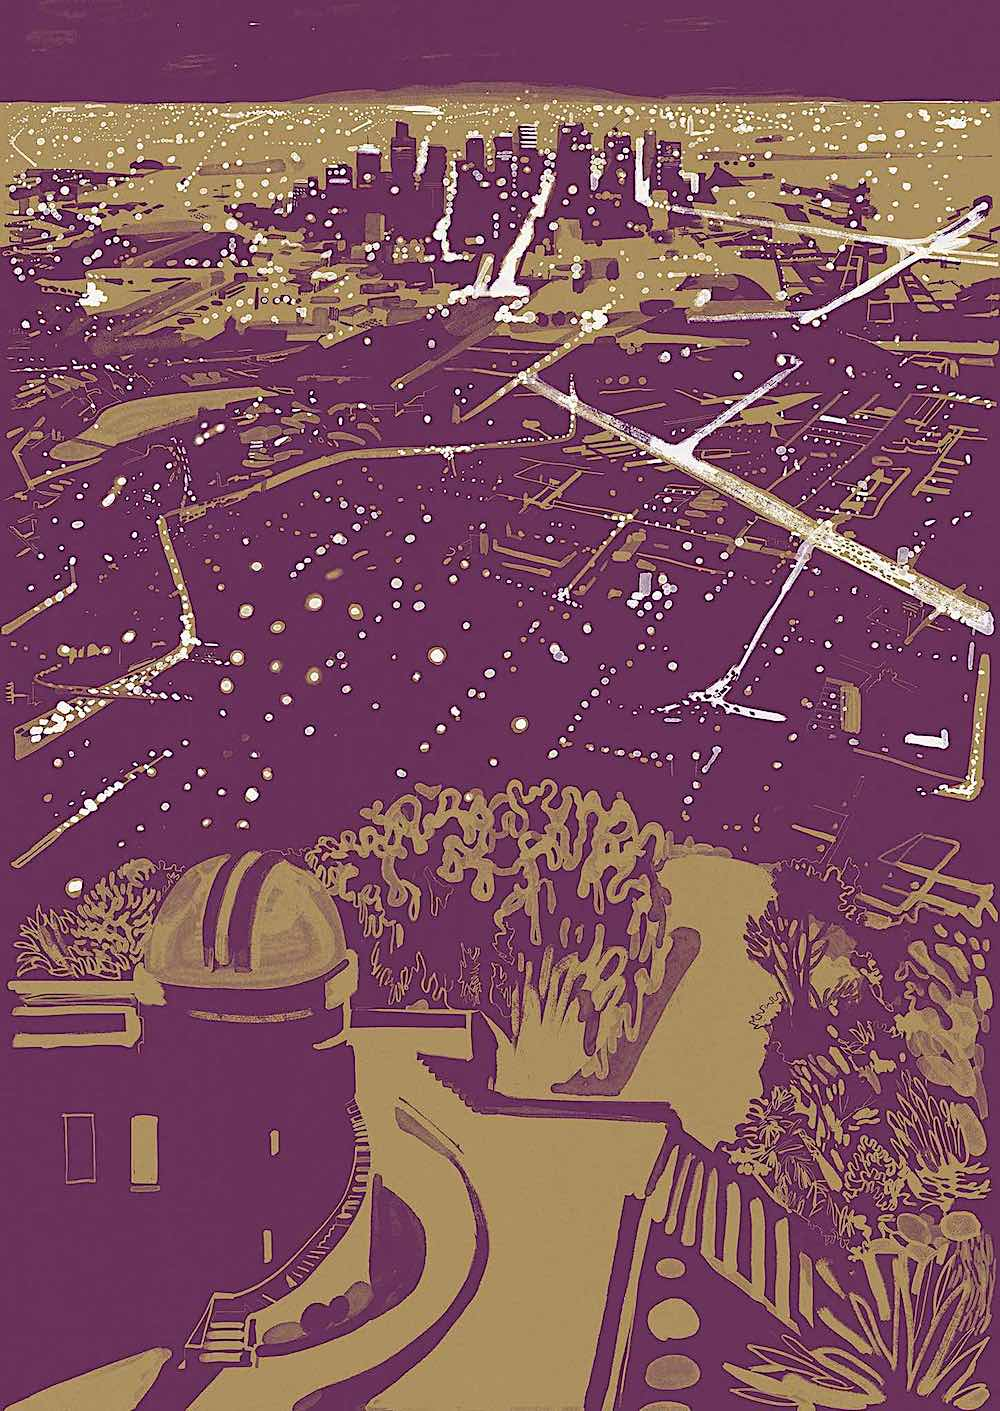 a Christoph Niemann art print of a purple city at night seen from an observatory on a hill